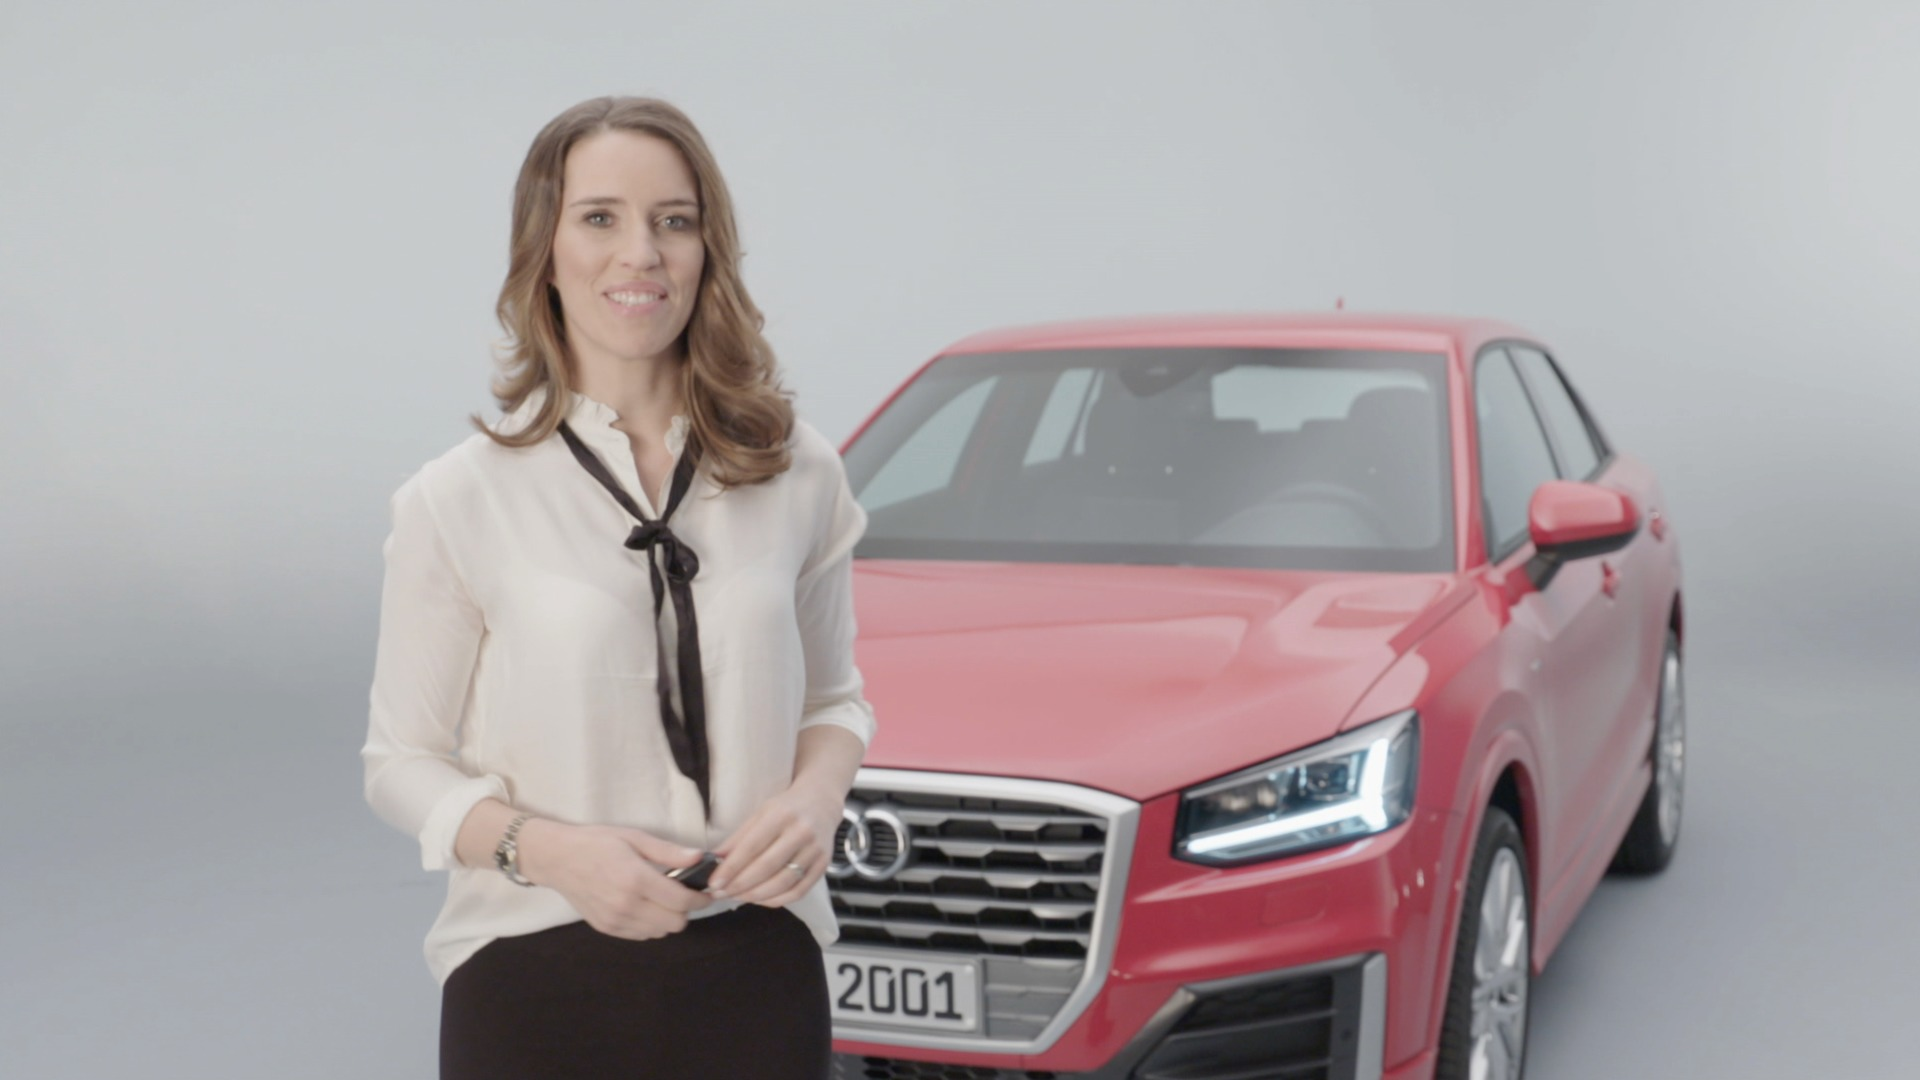 Exclusive presentation of the new Audi Q2